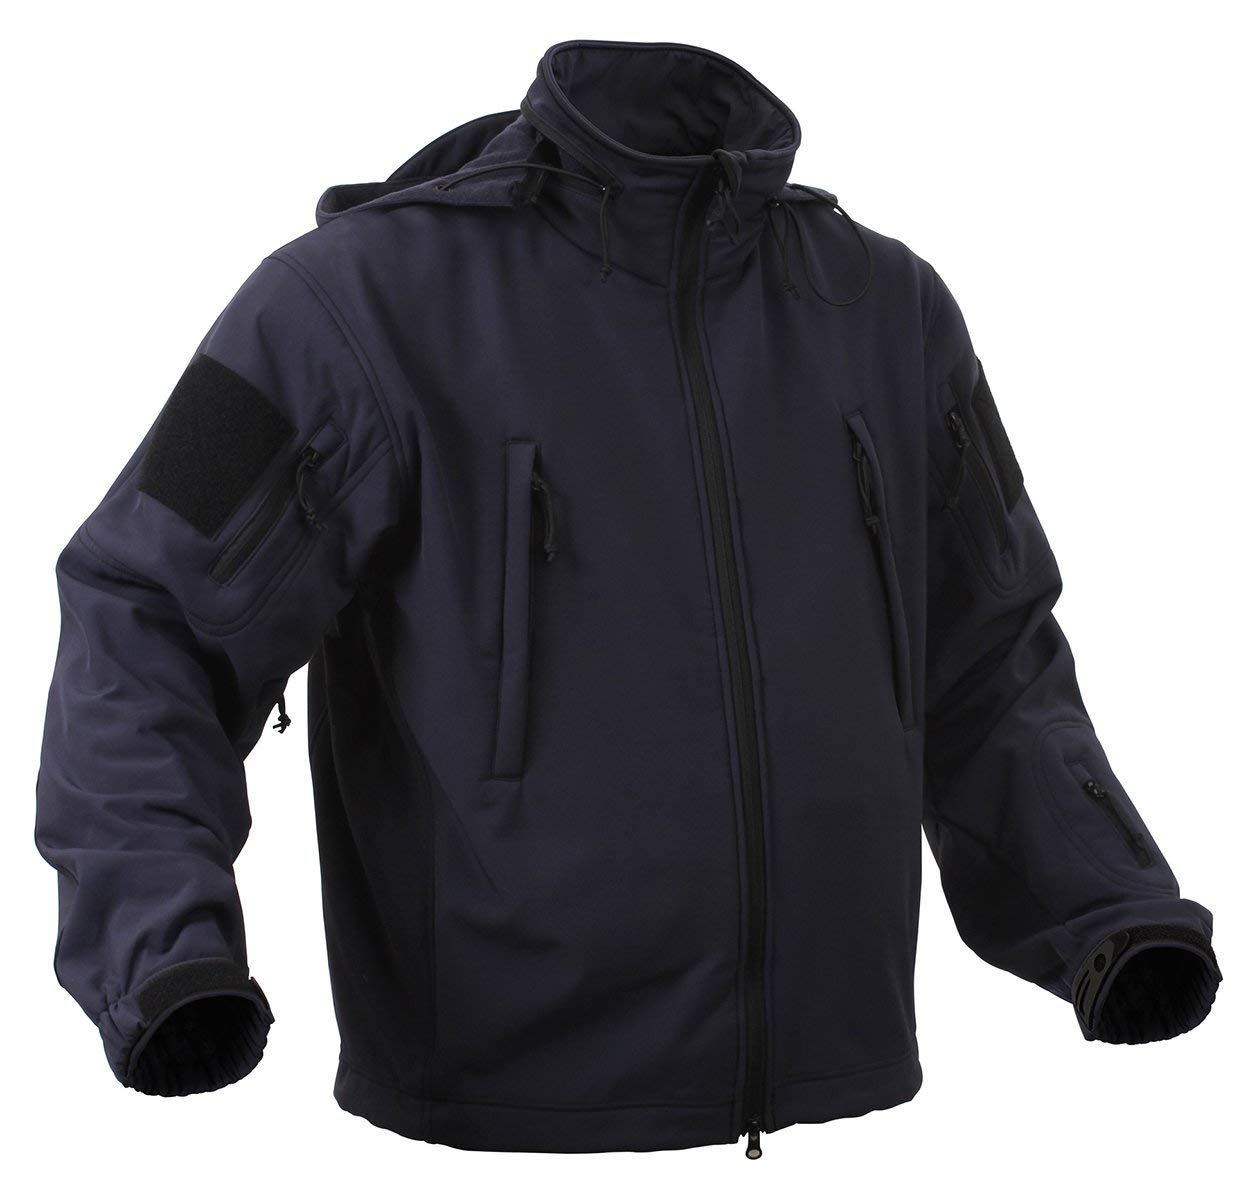 Rothco Special Ops Soft Shell Jacket - Midnite Blue - Small - 9511-BLUE-S